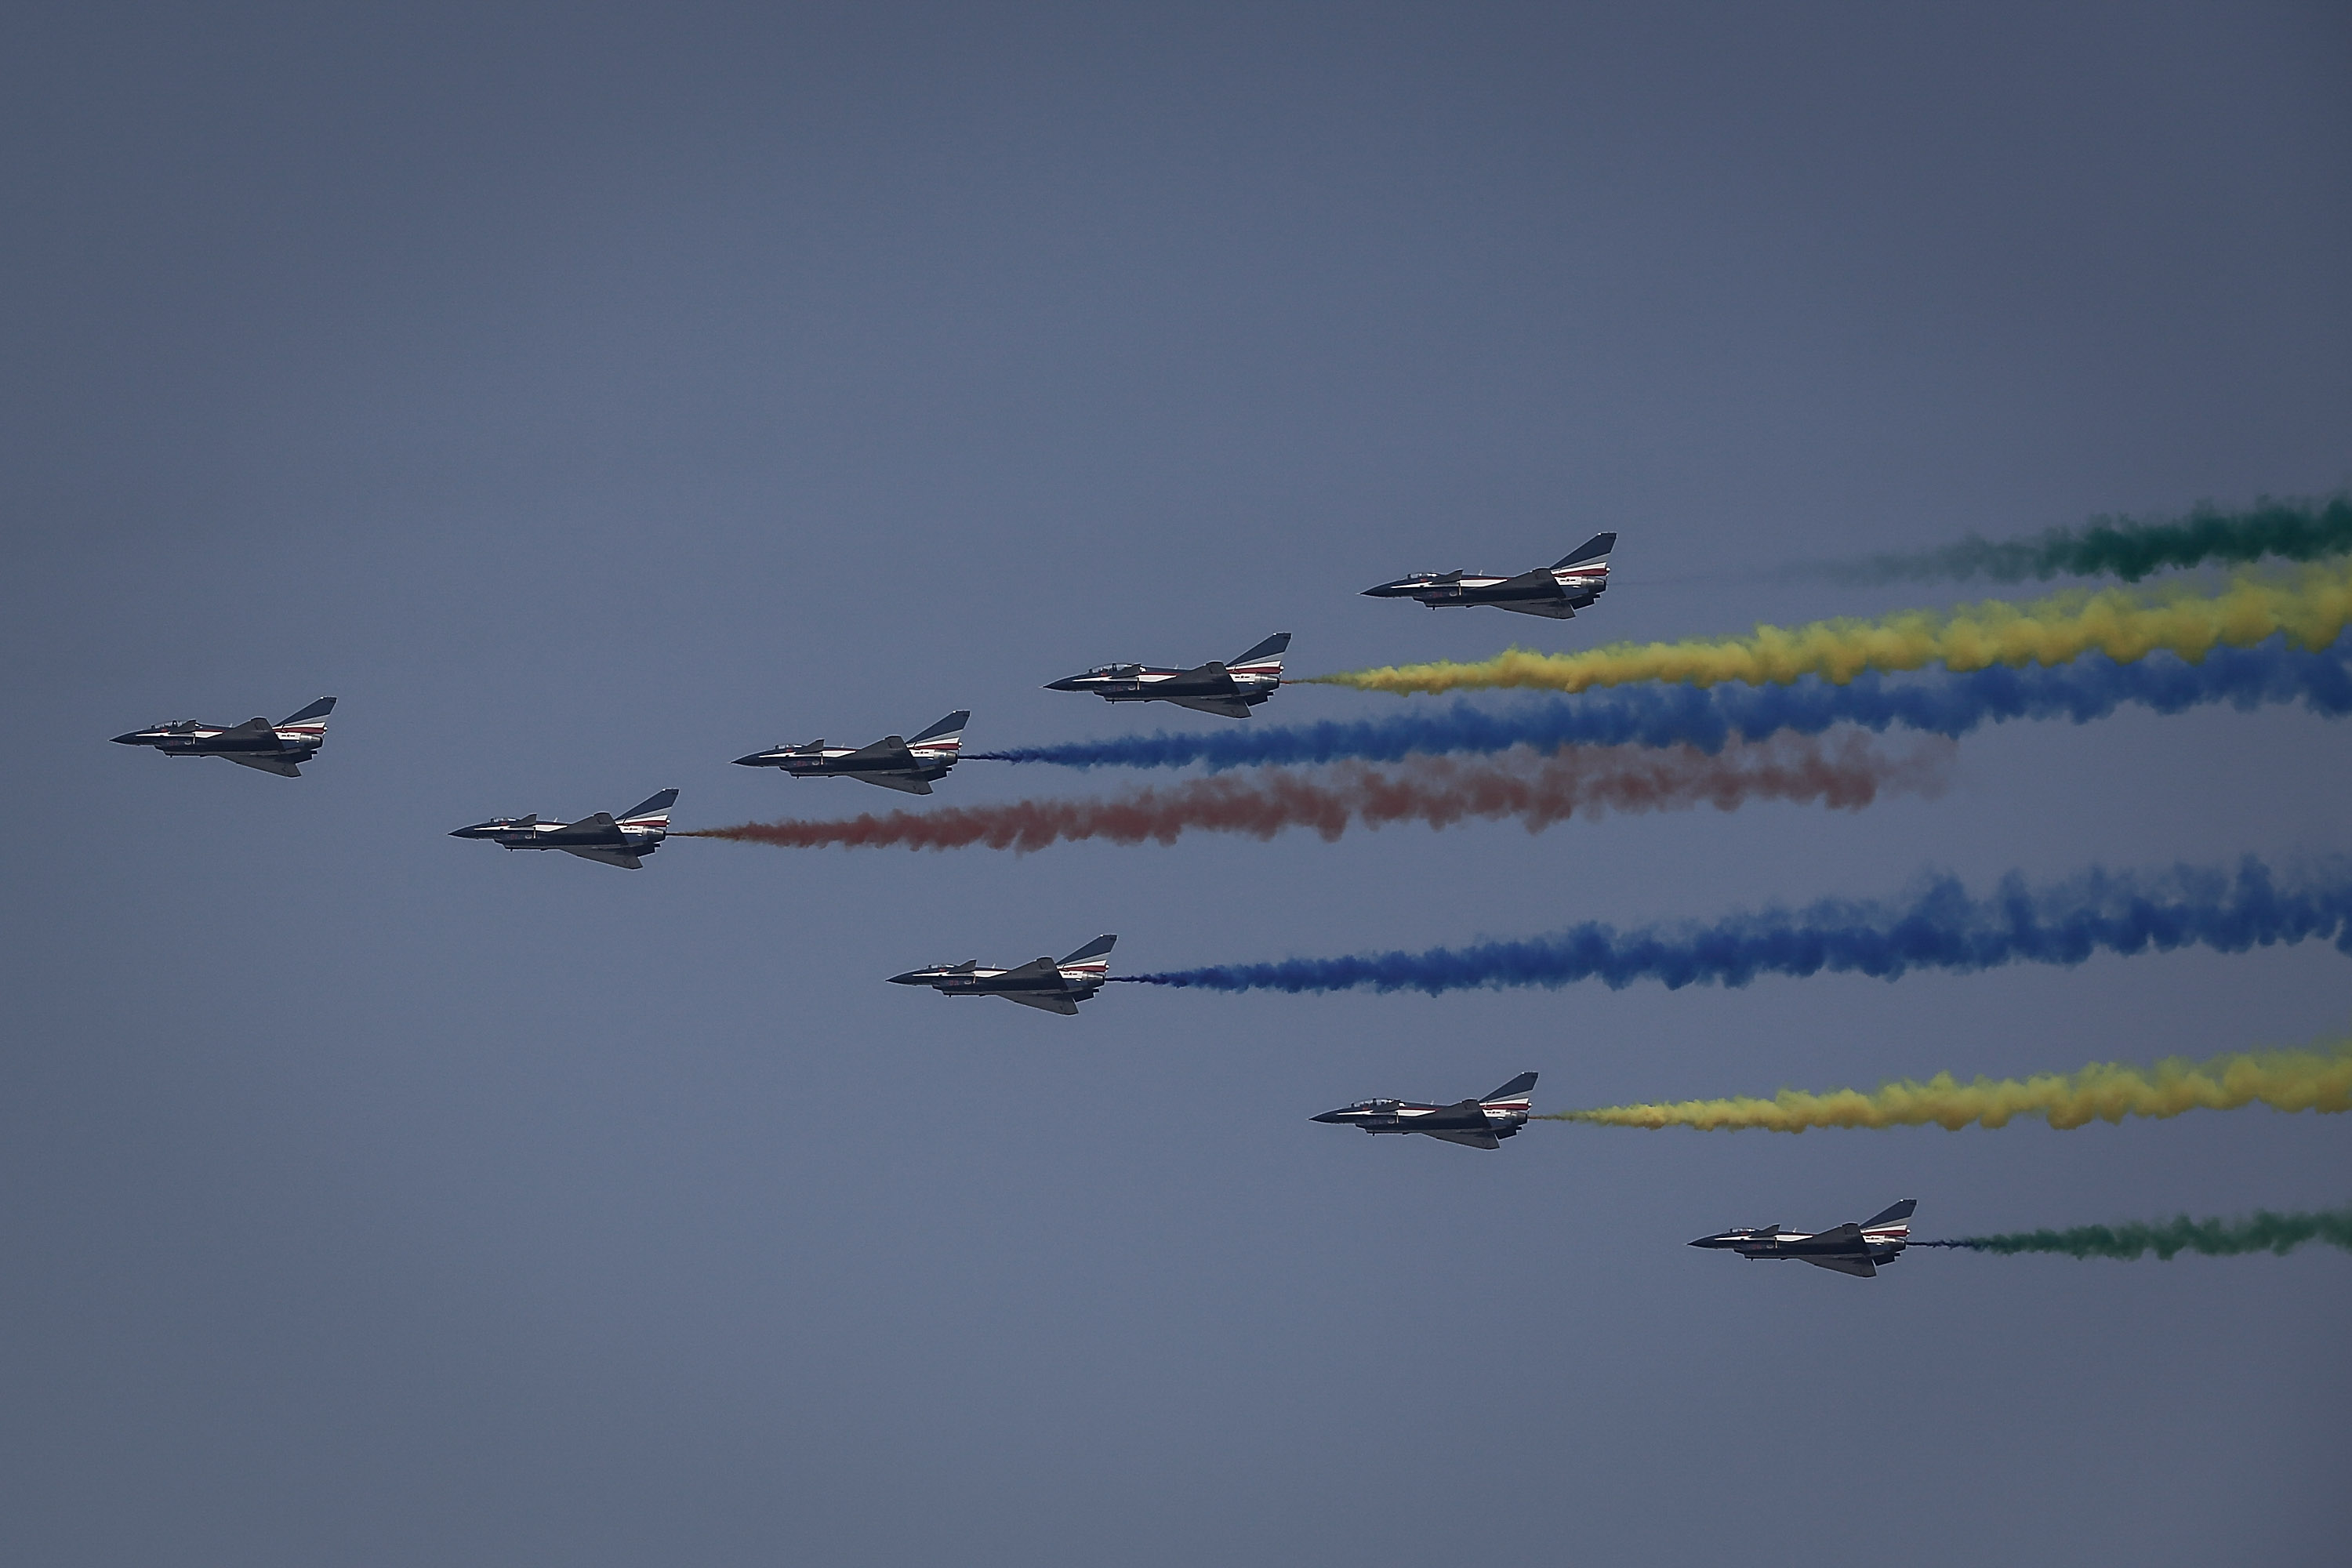 Planes from the Chinese People's Liberation Army Air Force fly in formation during a parade to celebrate the 70th anniversary of the founding of the People's Republic of China. (Wang He/Getty Images)